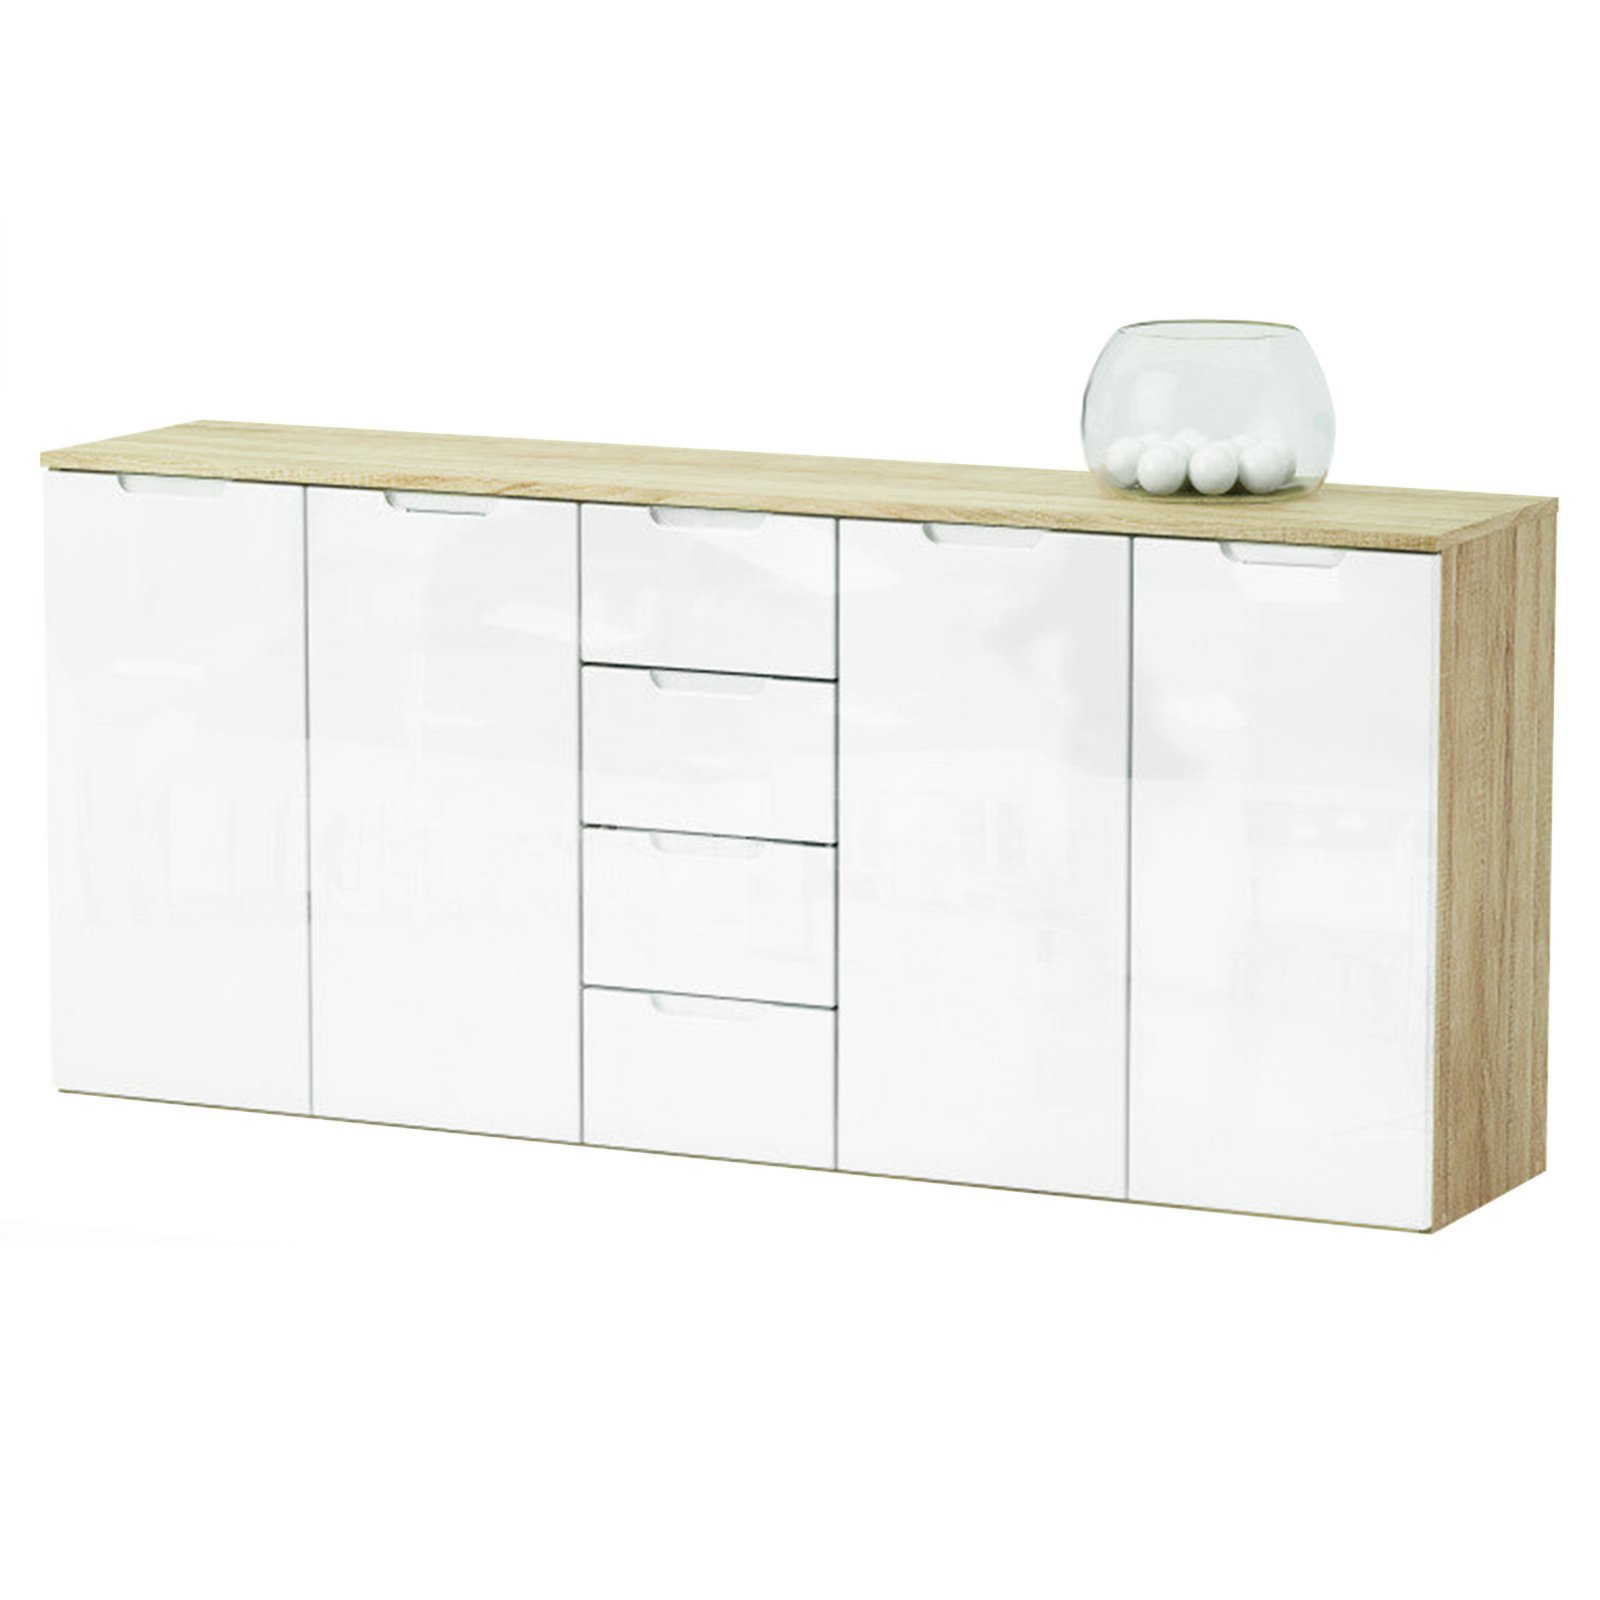 kommode clio sonoma eiche wei 179 cm kommoden sideboards m bel m belhaus roller. Black Bedroom Furniture Sets. Home Design Ideas